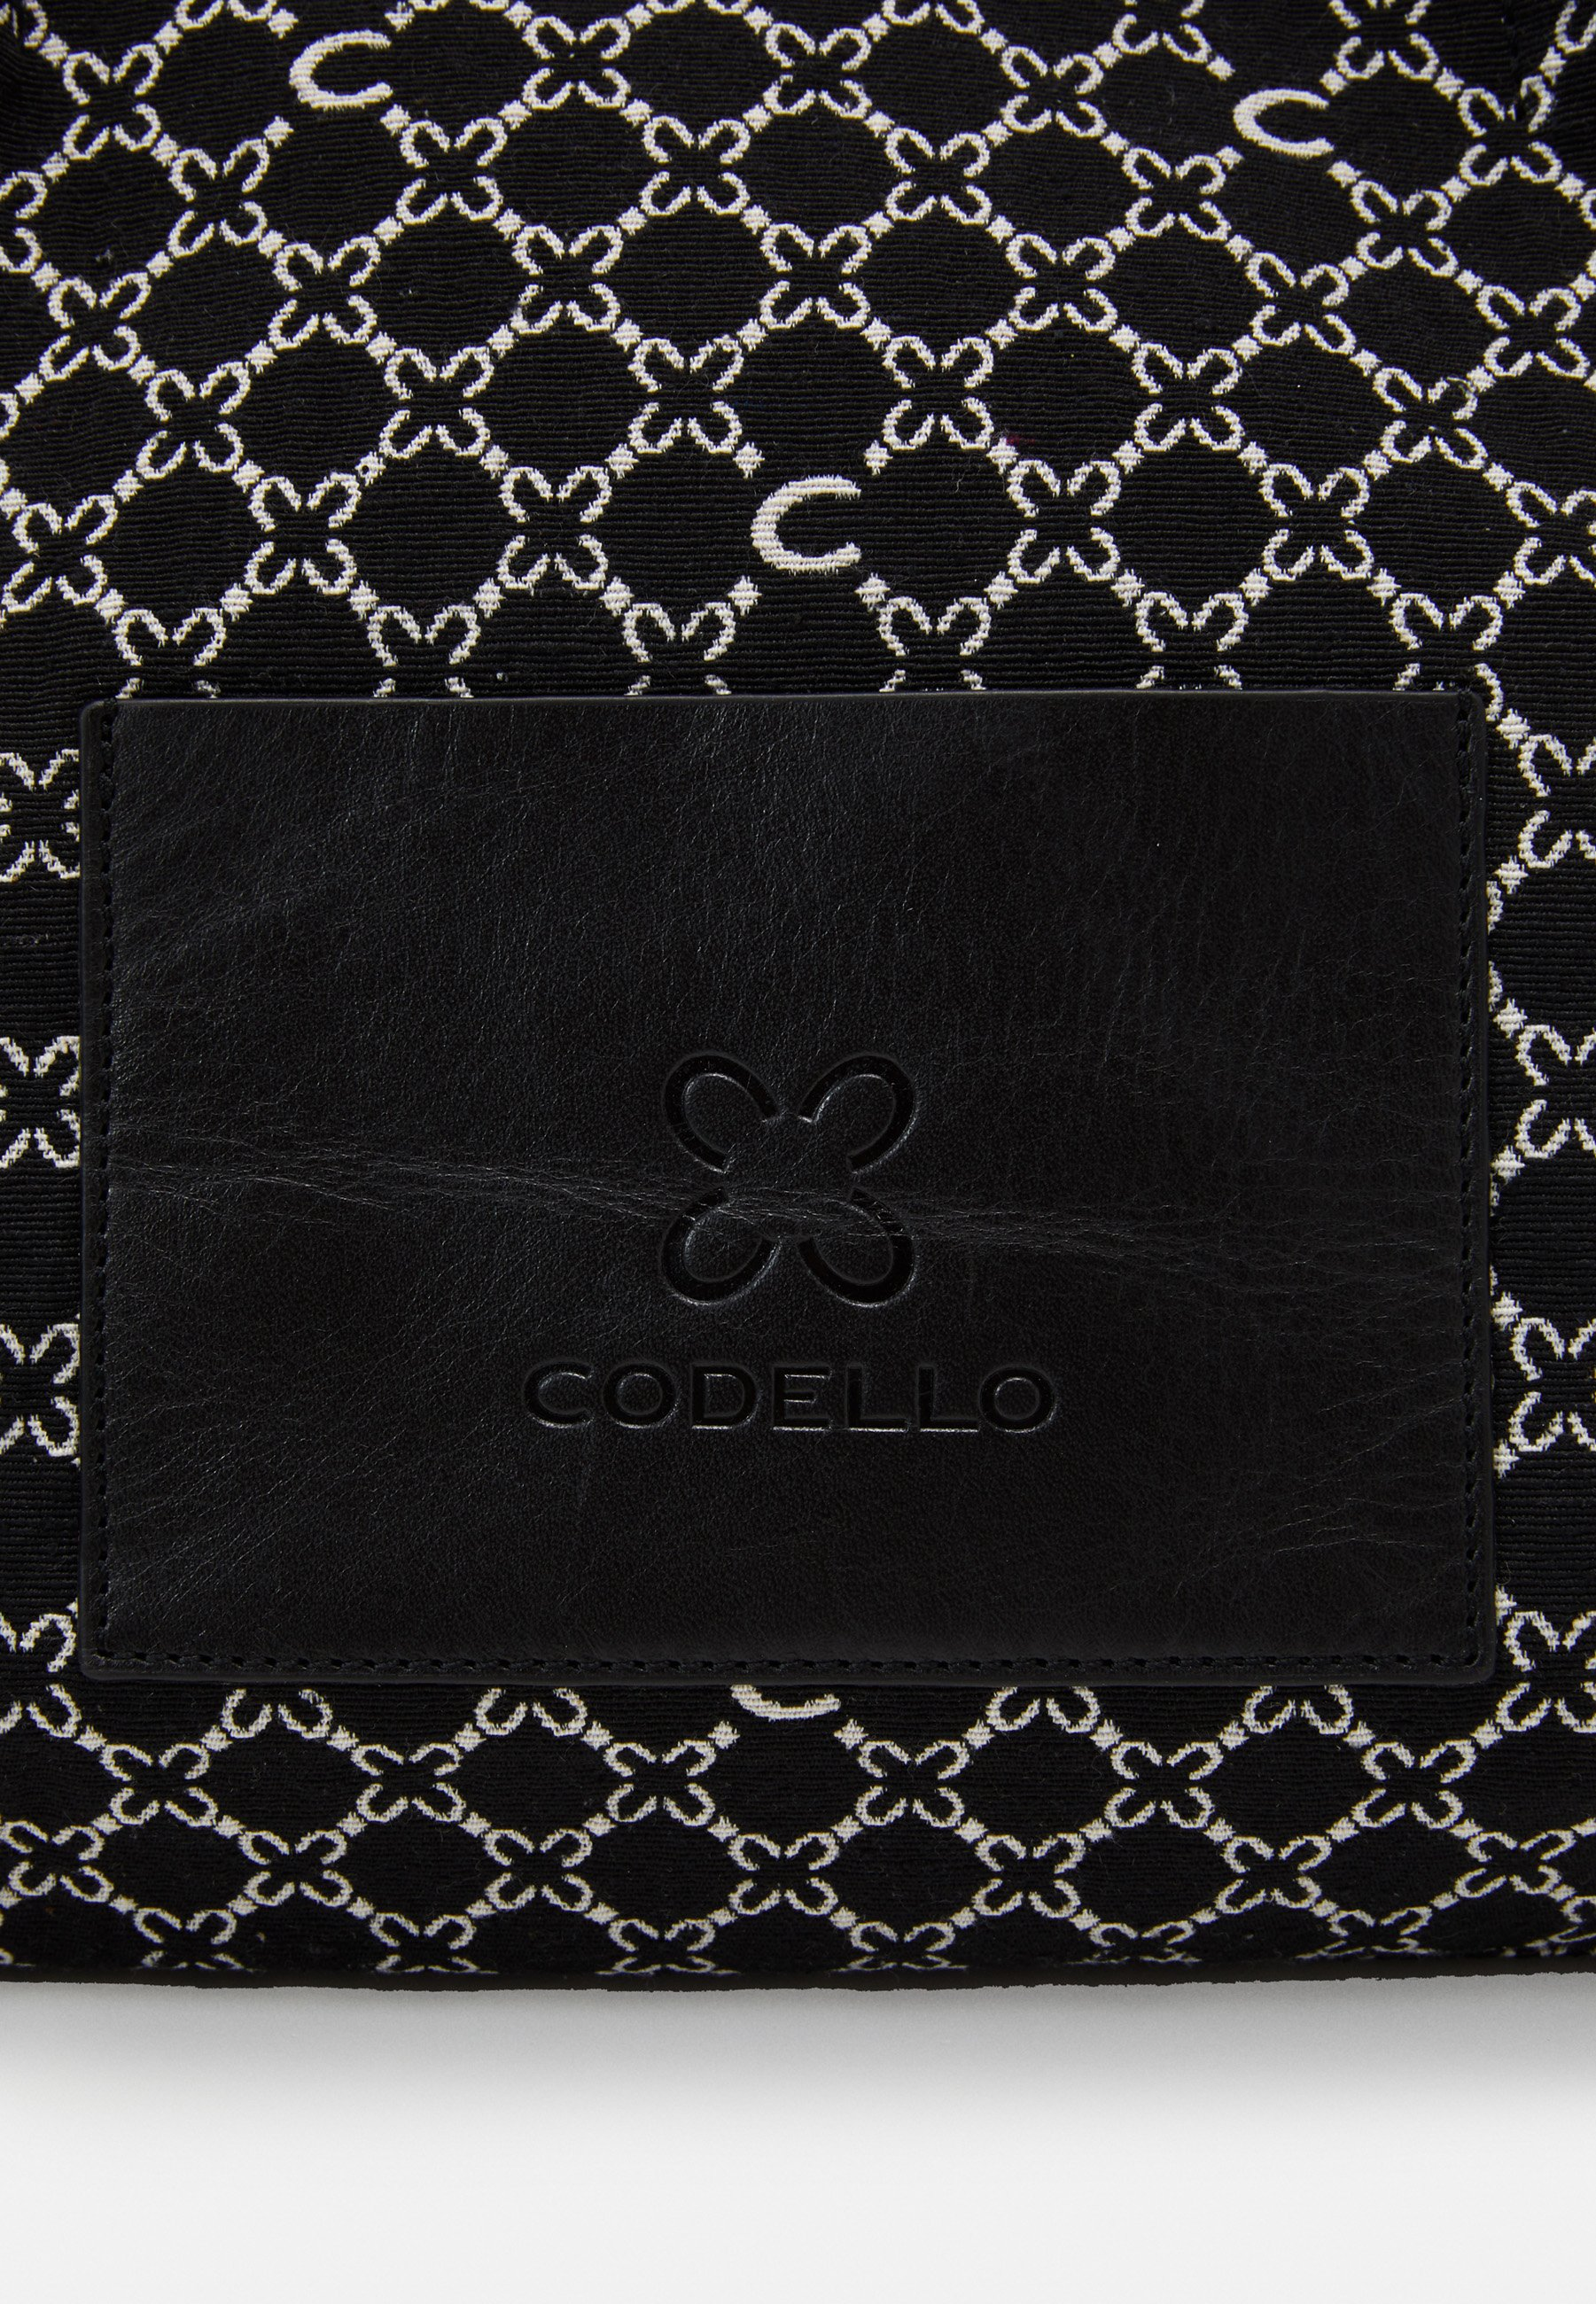 Codello Bags Collection - Shopping Bag Black/schwarz